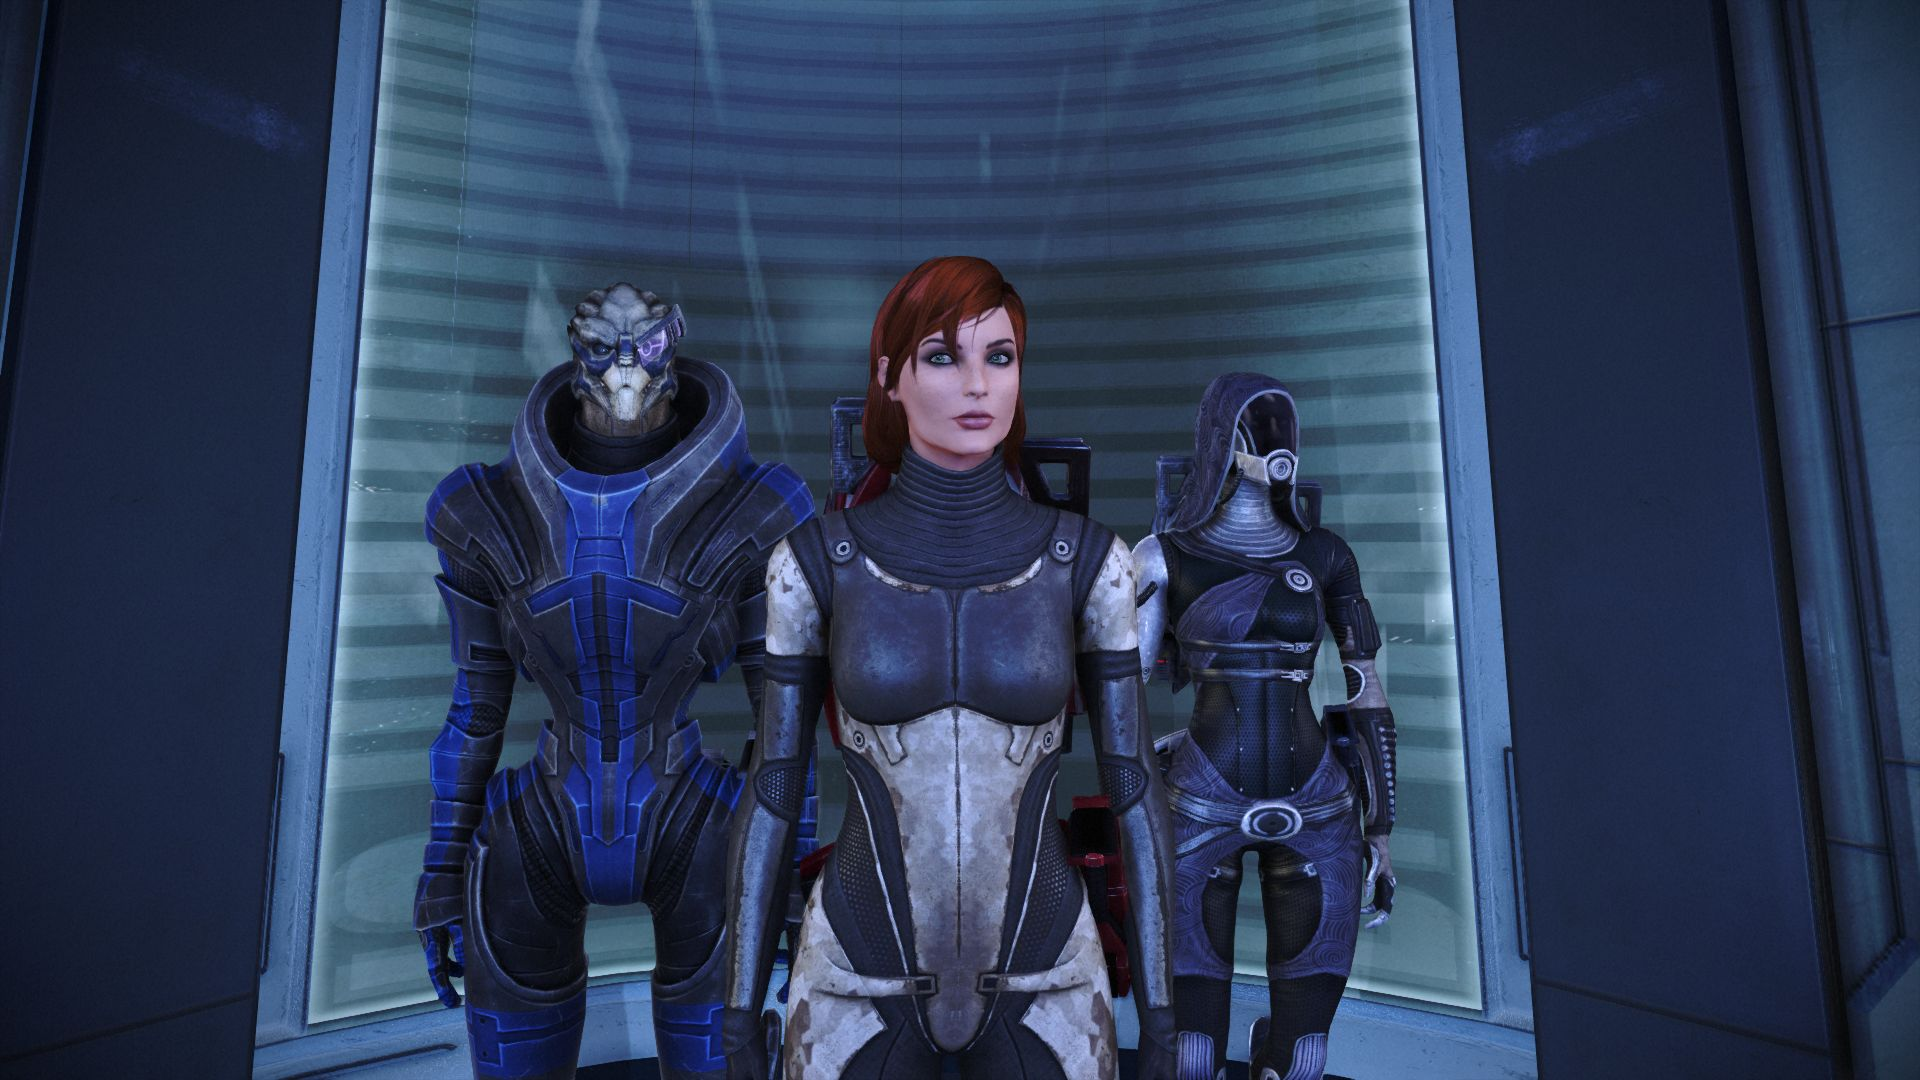 An elevator ride with Garrus and Tali